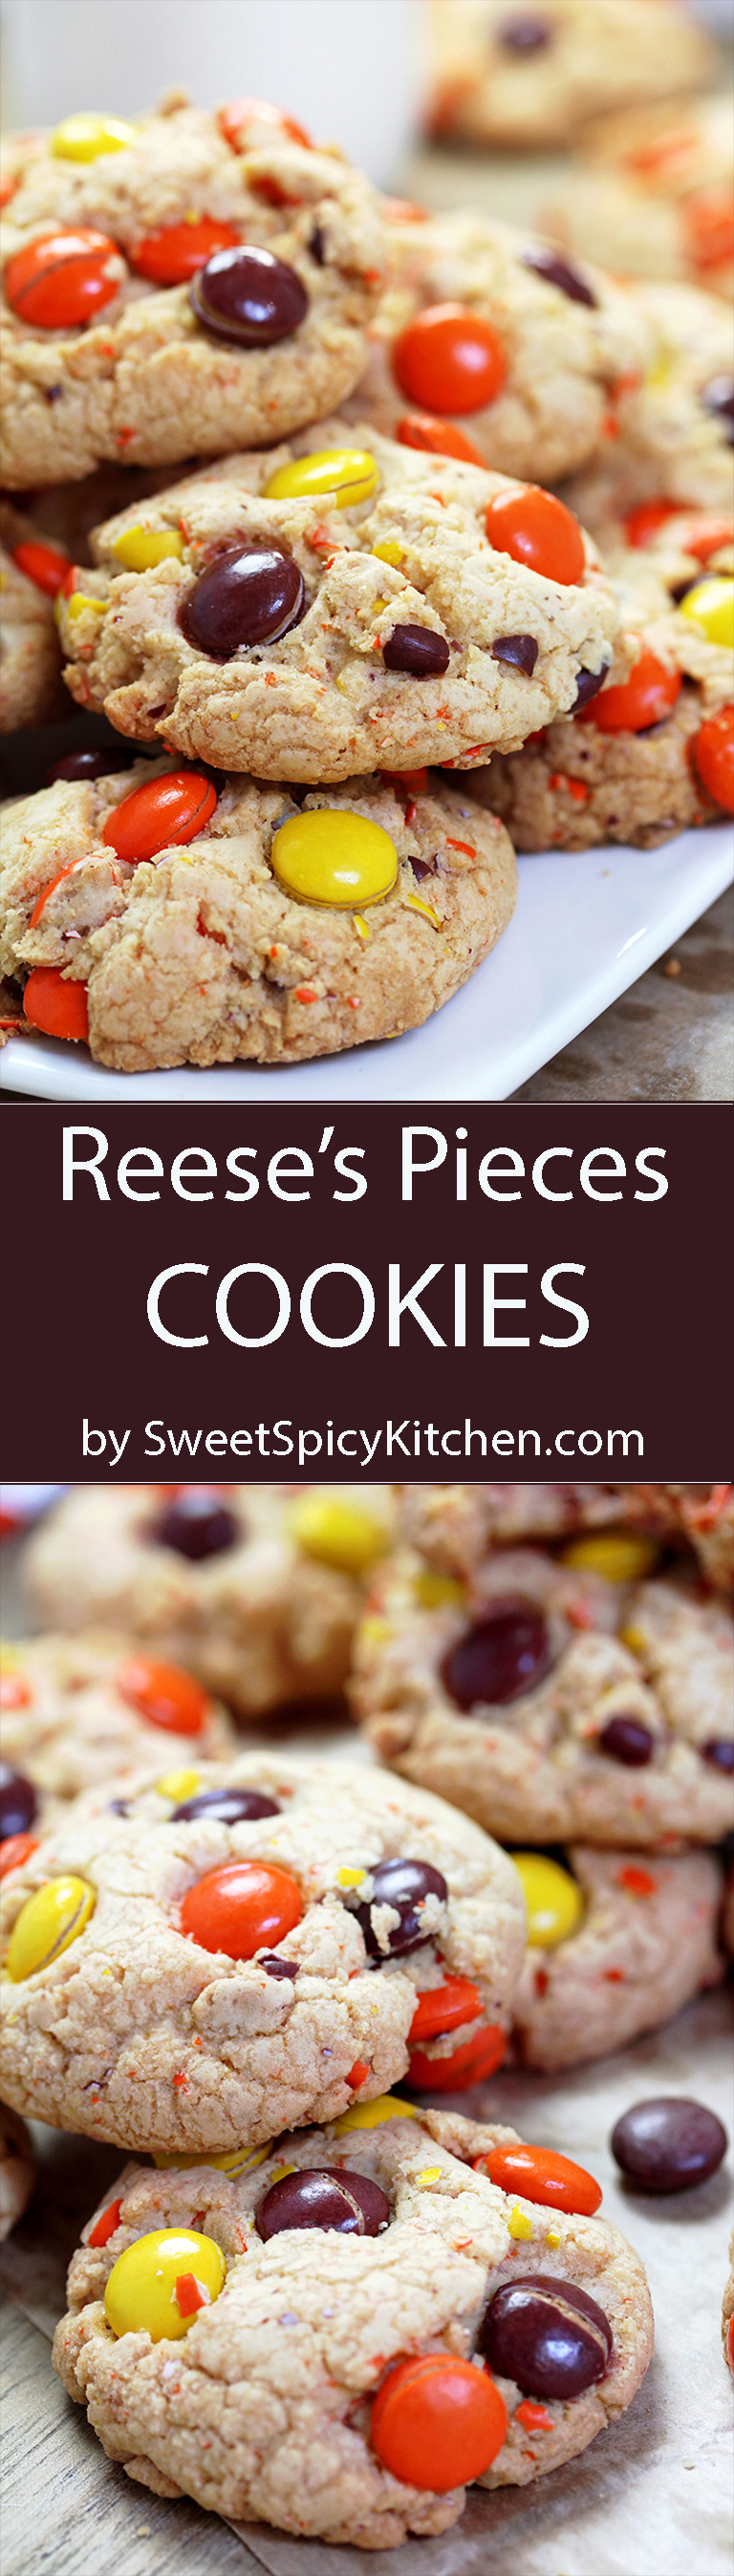 Reese's Pieces Cookies – crunchy outside, soft inside – perfect fall cookies in Halloween colors.